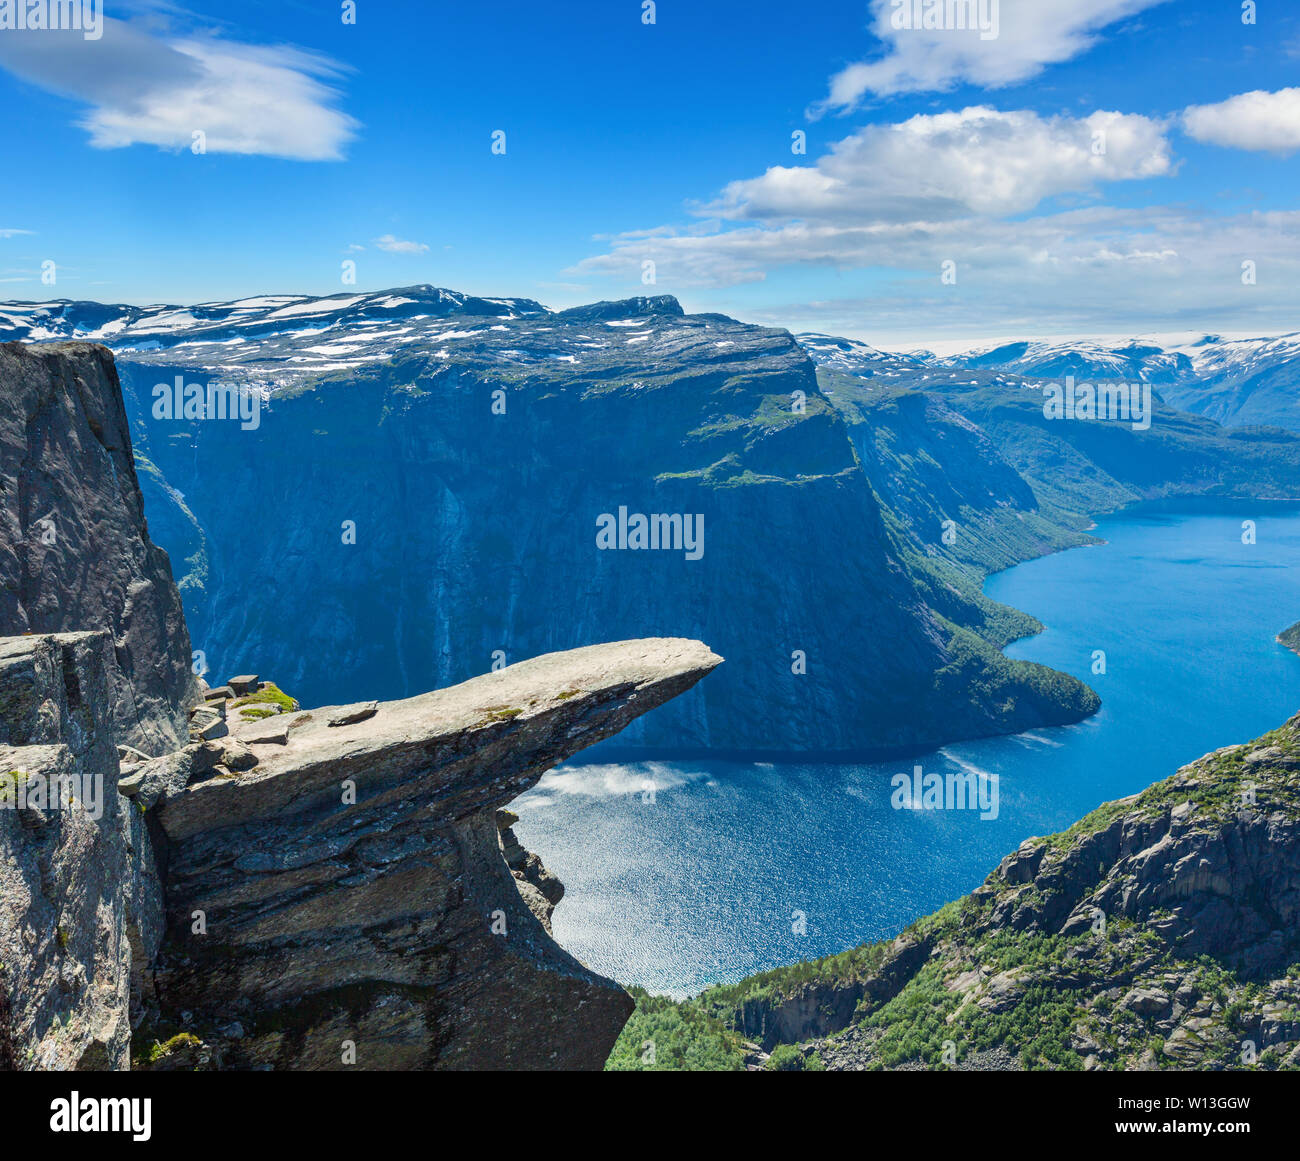 The summer view of Trolltunga (famous The Troll's tongue Norvegian destination) and Ringedalsvatnet lake in Odda, Roldal, Norway. - Stock Image